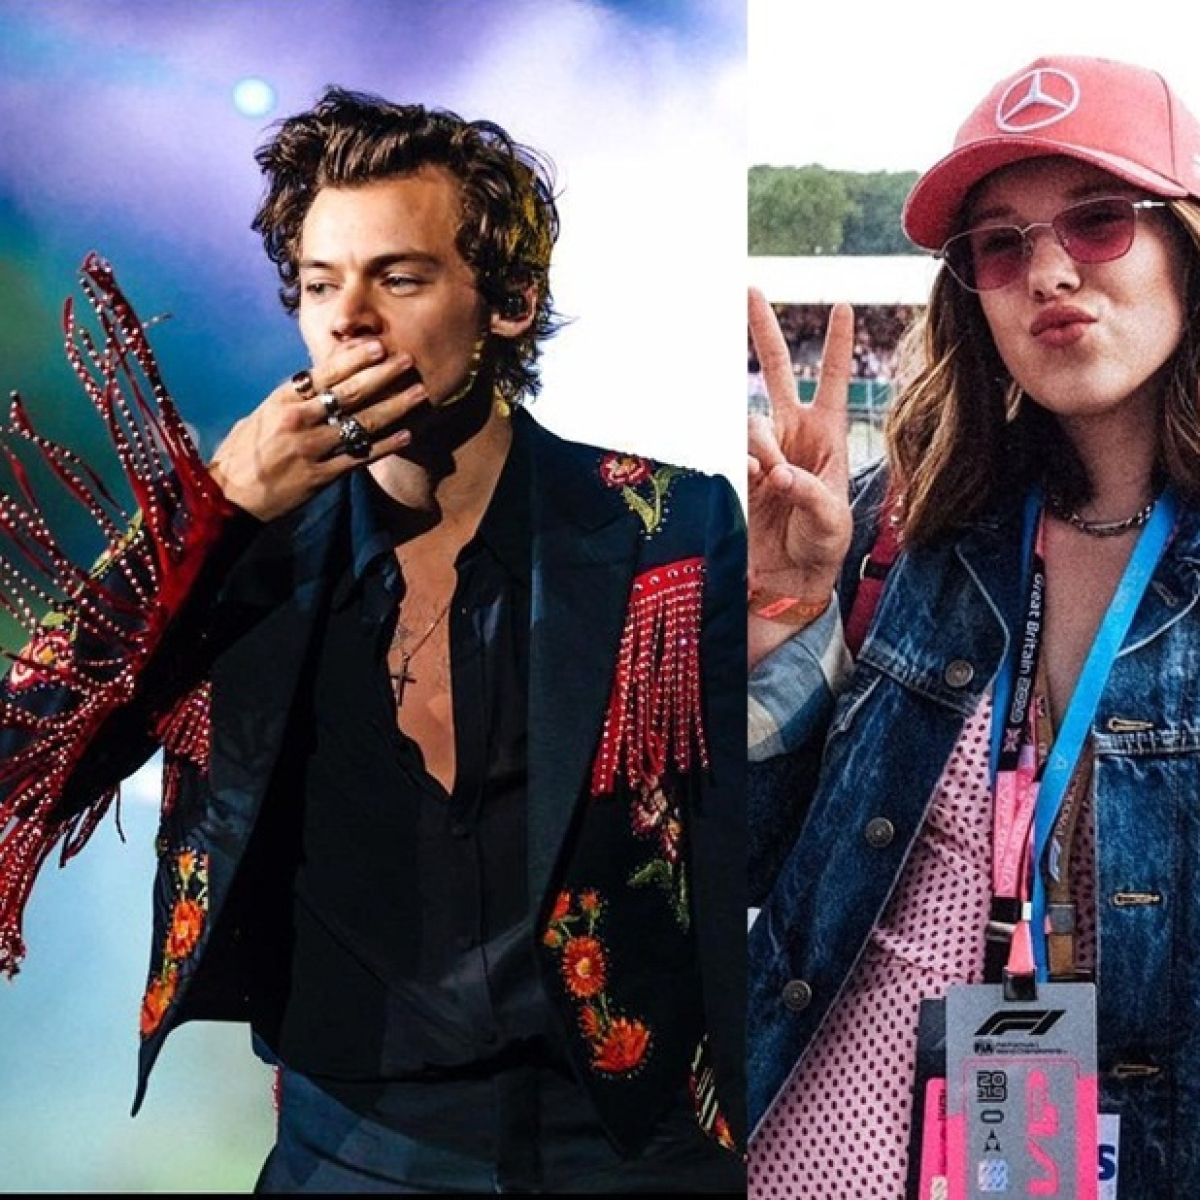 What's cooking between Harry Styles and Millie Bobby Brown?